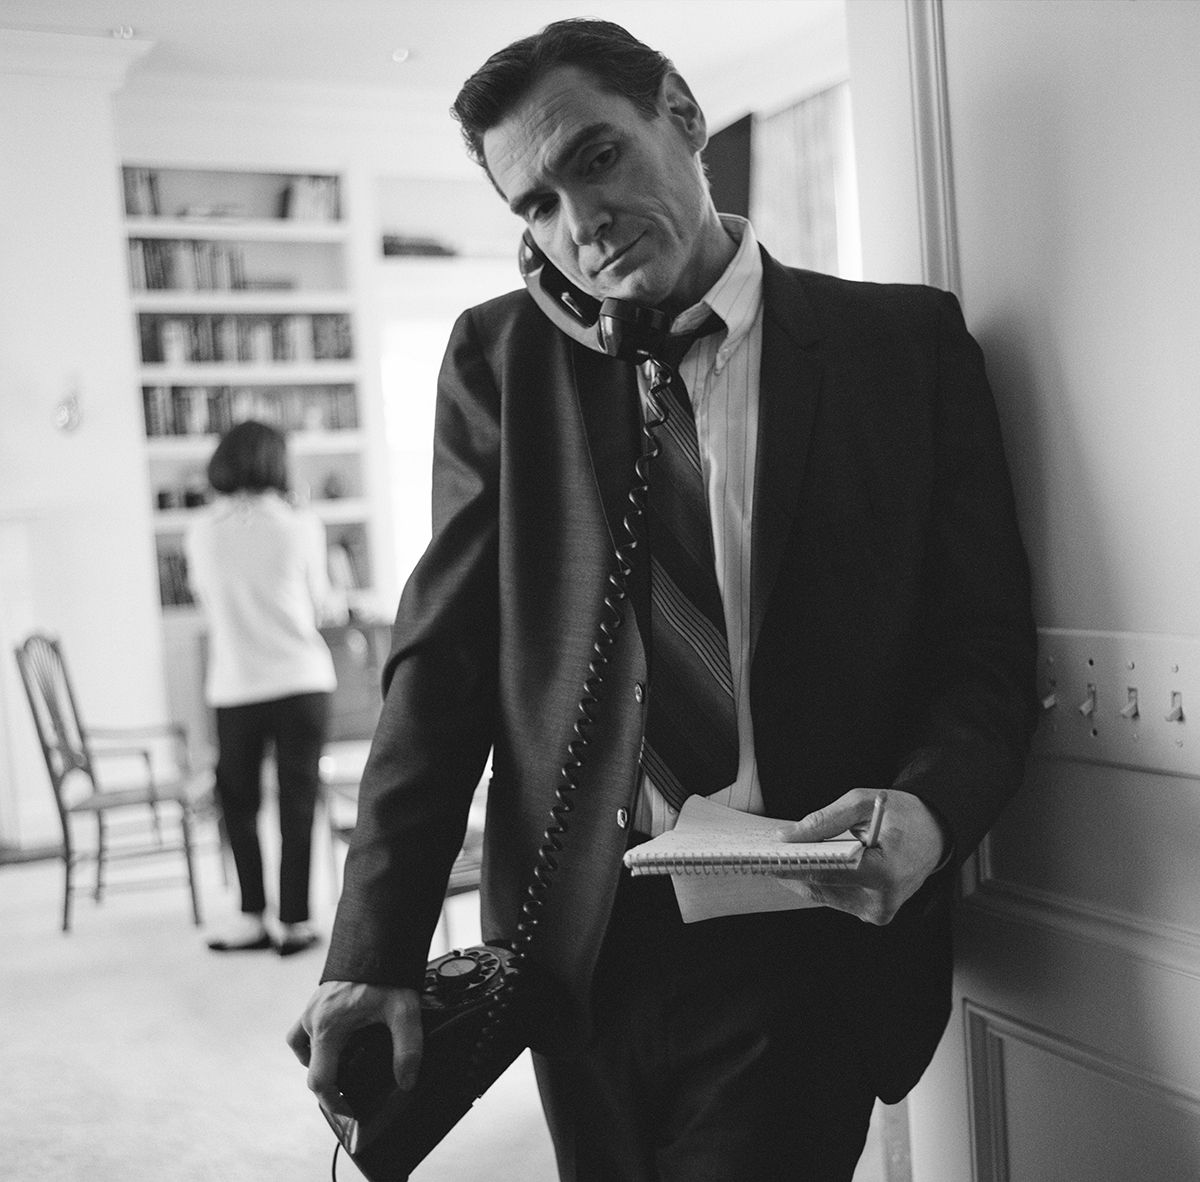 Crudup playing a journalist in Jackie.